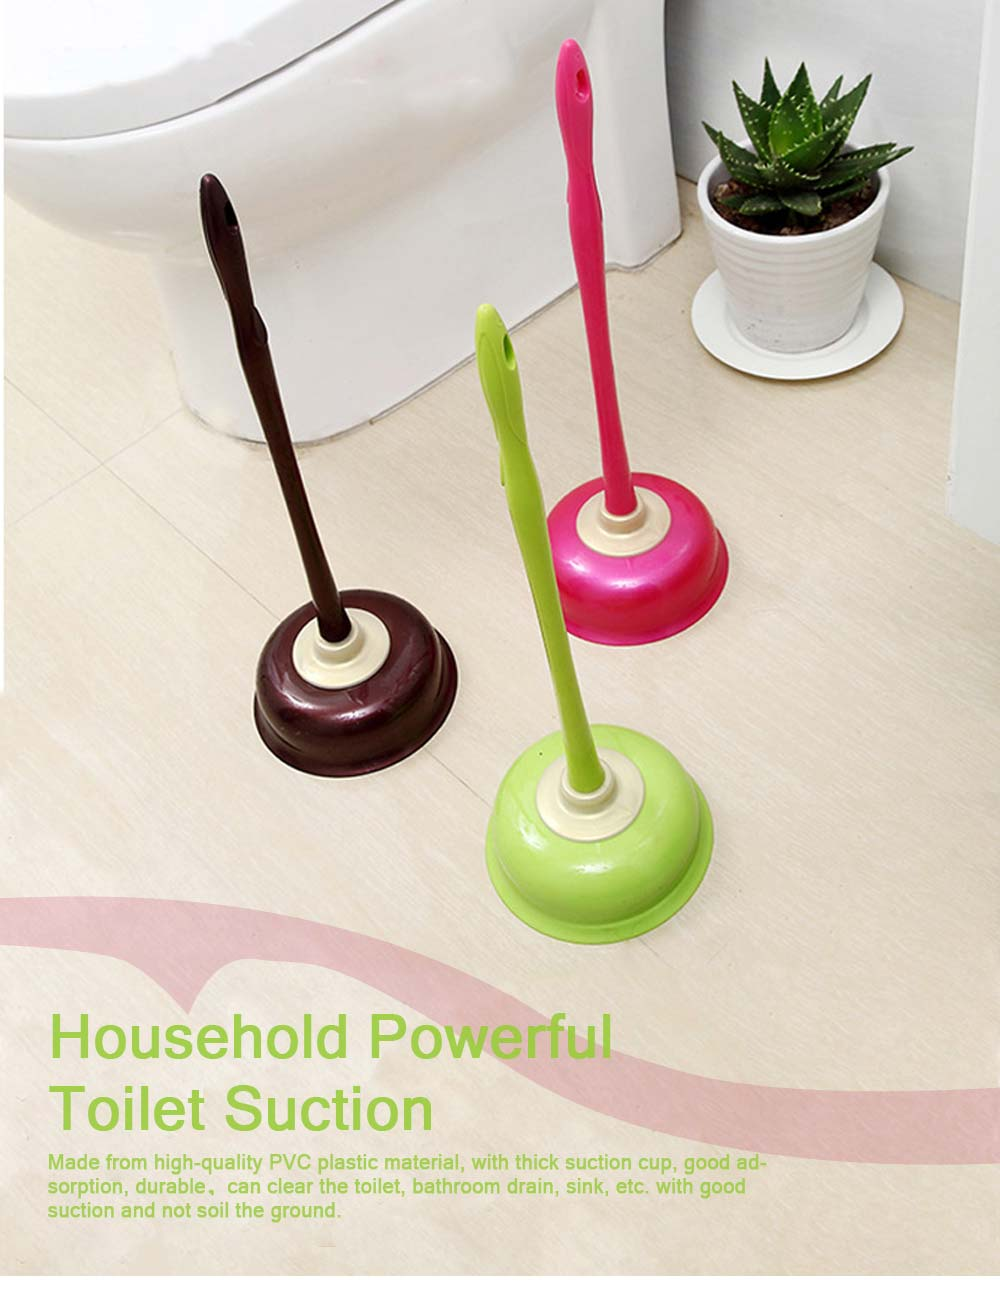 Household Powerful Toilet Suction, Dredger Suction for Toilet, Sparse Toilet, Bathroom Drain, Dredging Toilet Suction 0